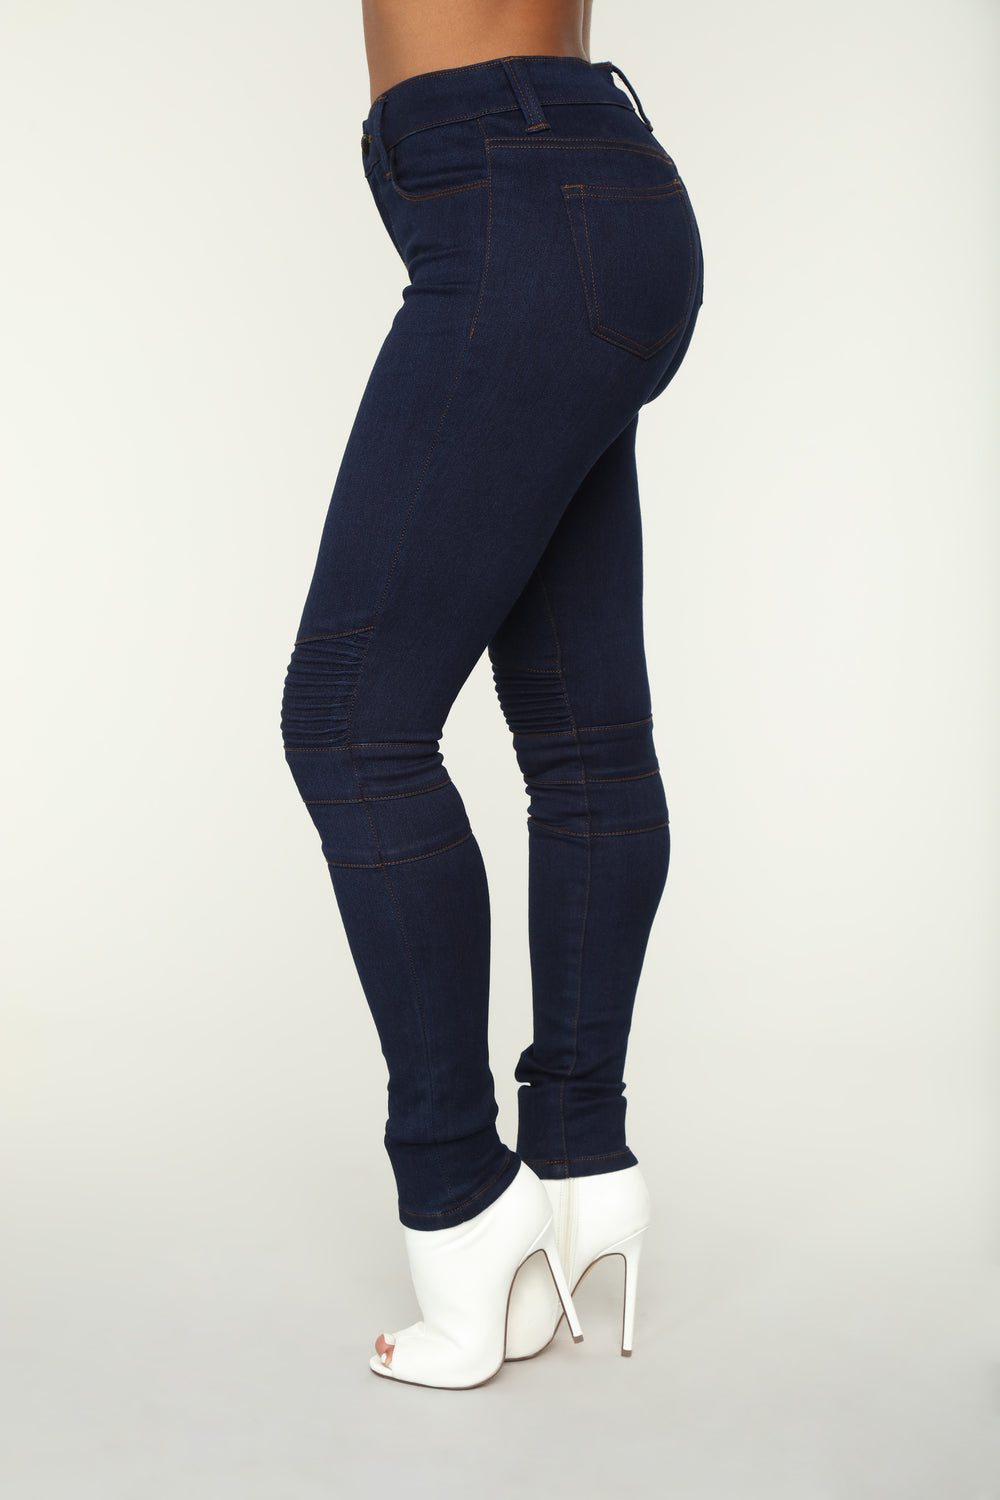 Making Moves Skinny Jeans - Dark Denim